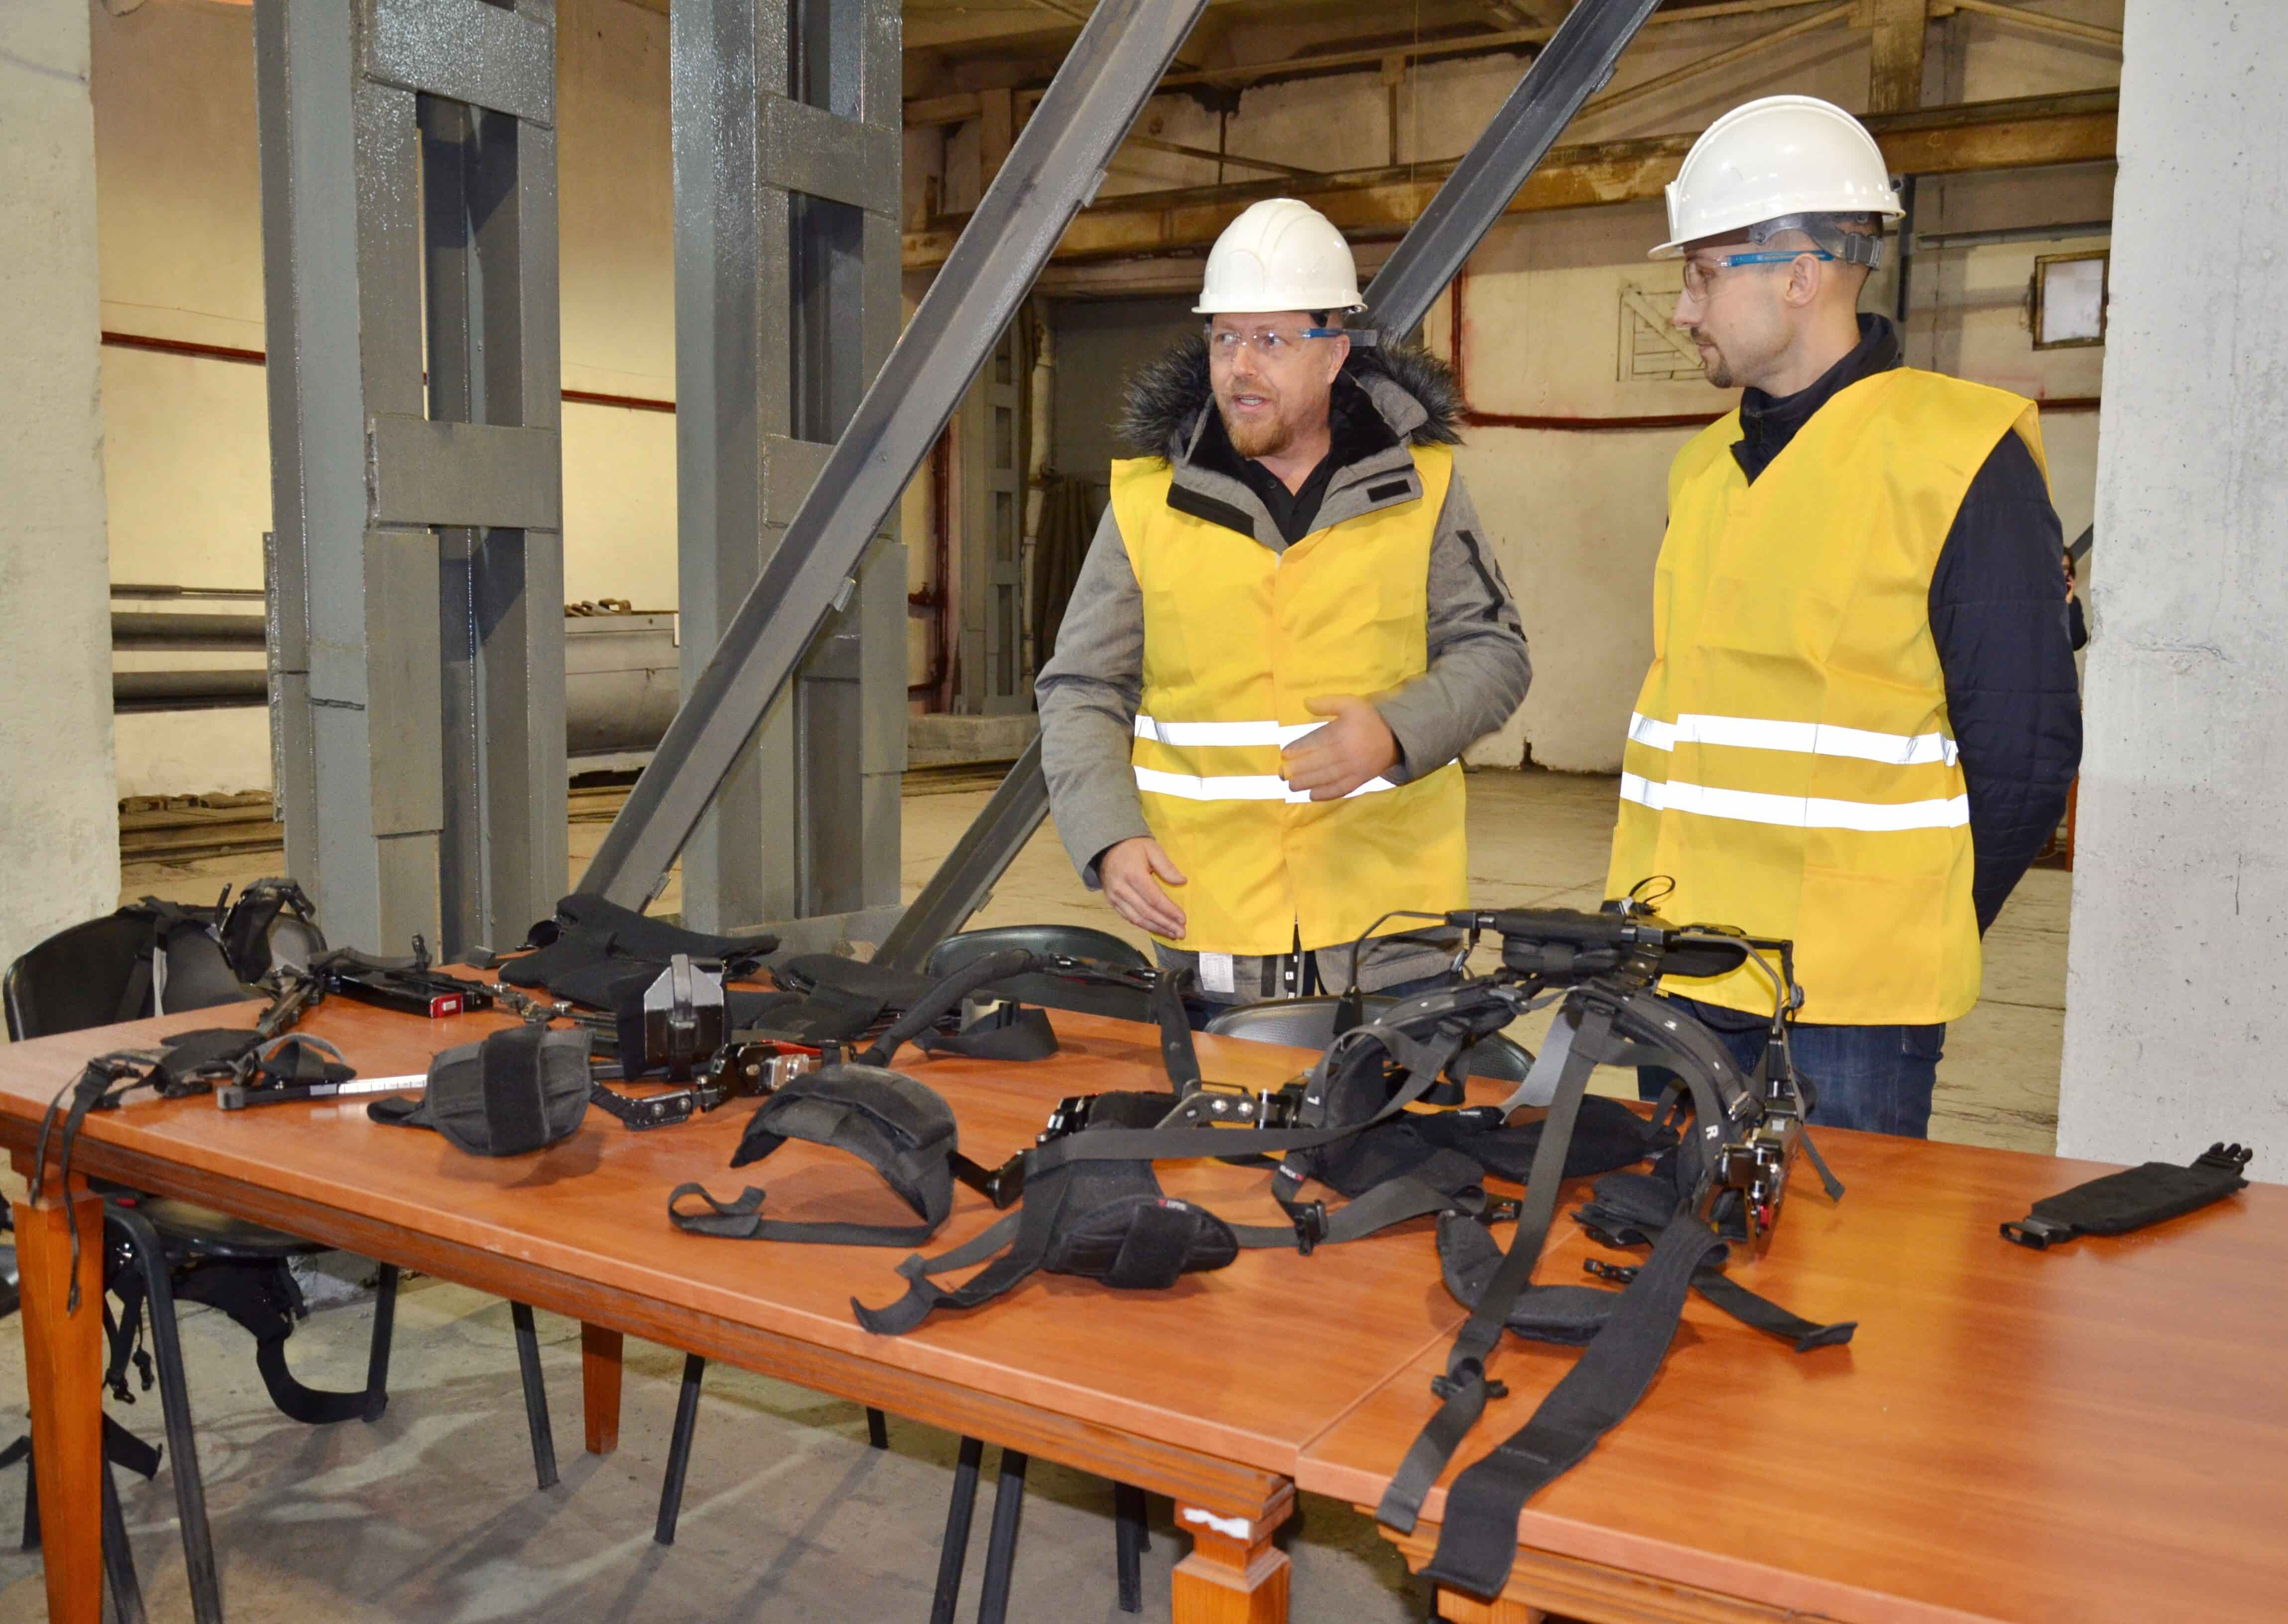 DTEK tested exoskeletons for work in mines and thermal power plants